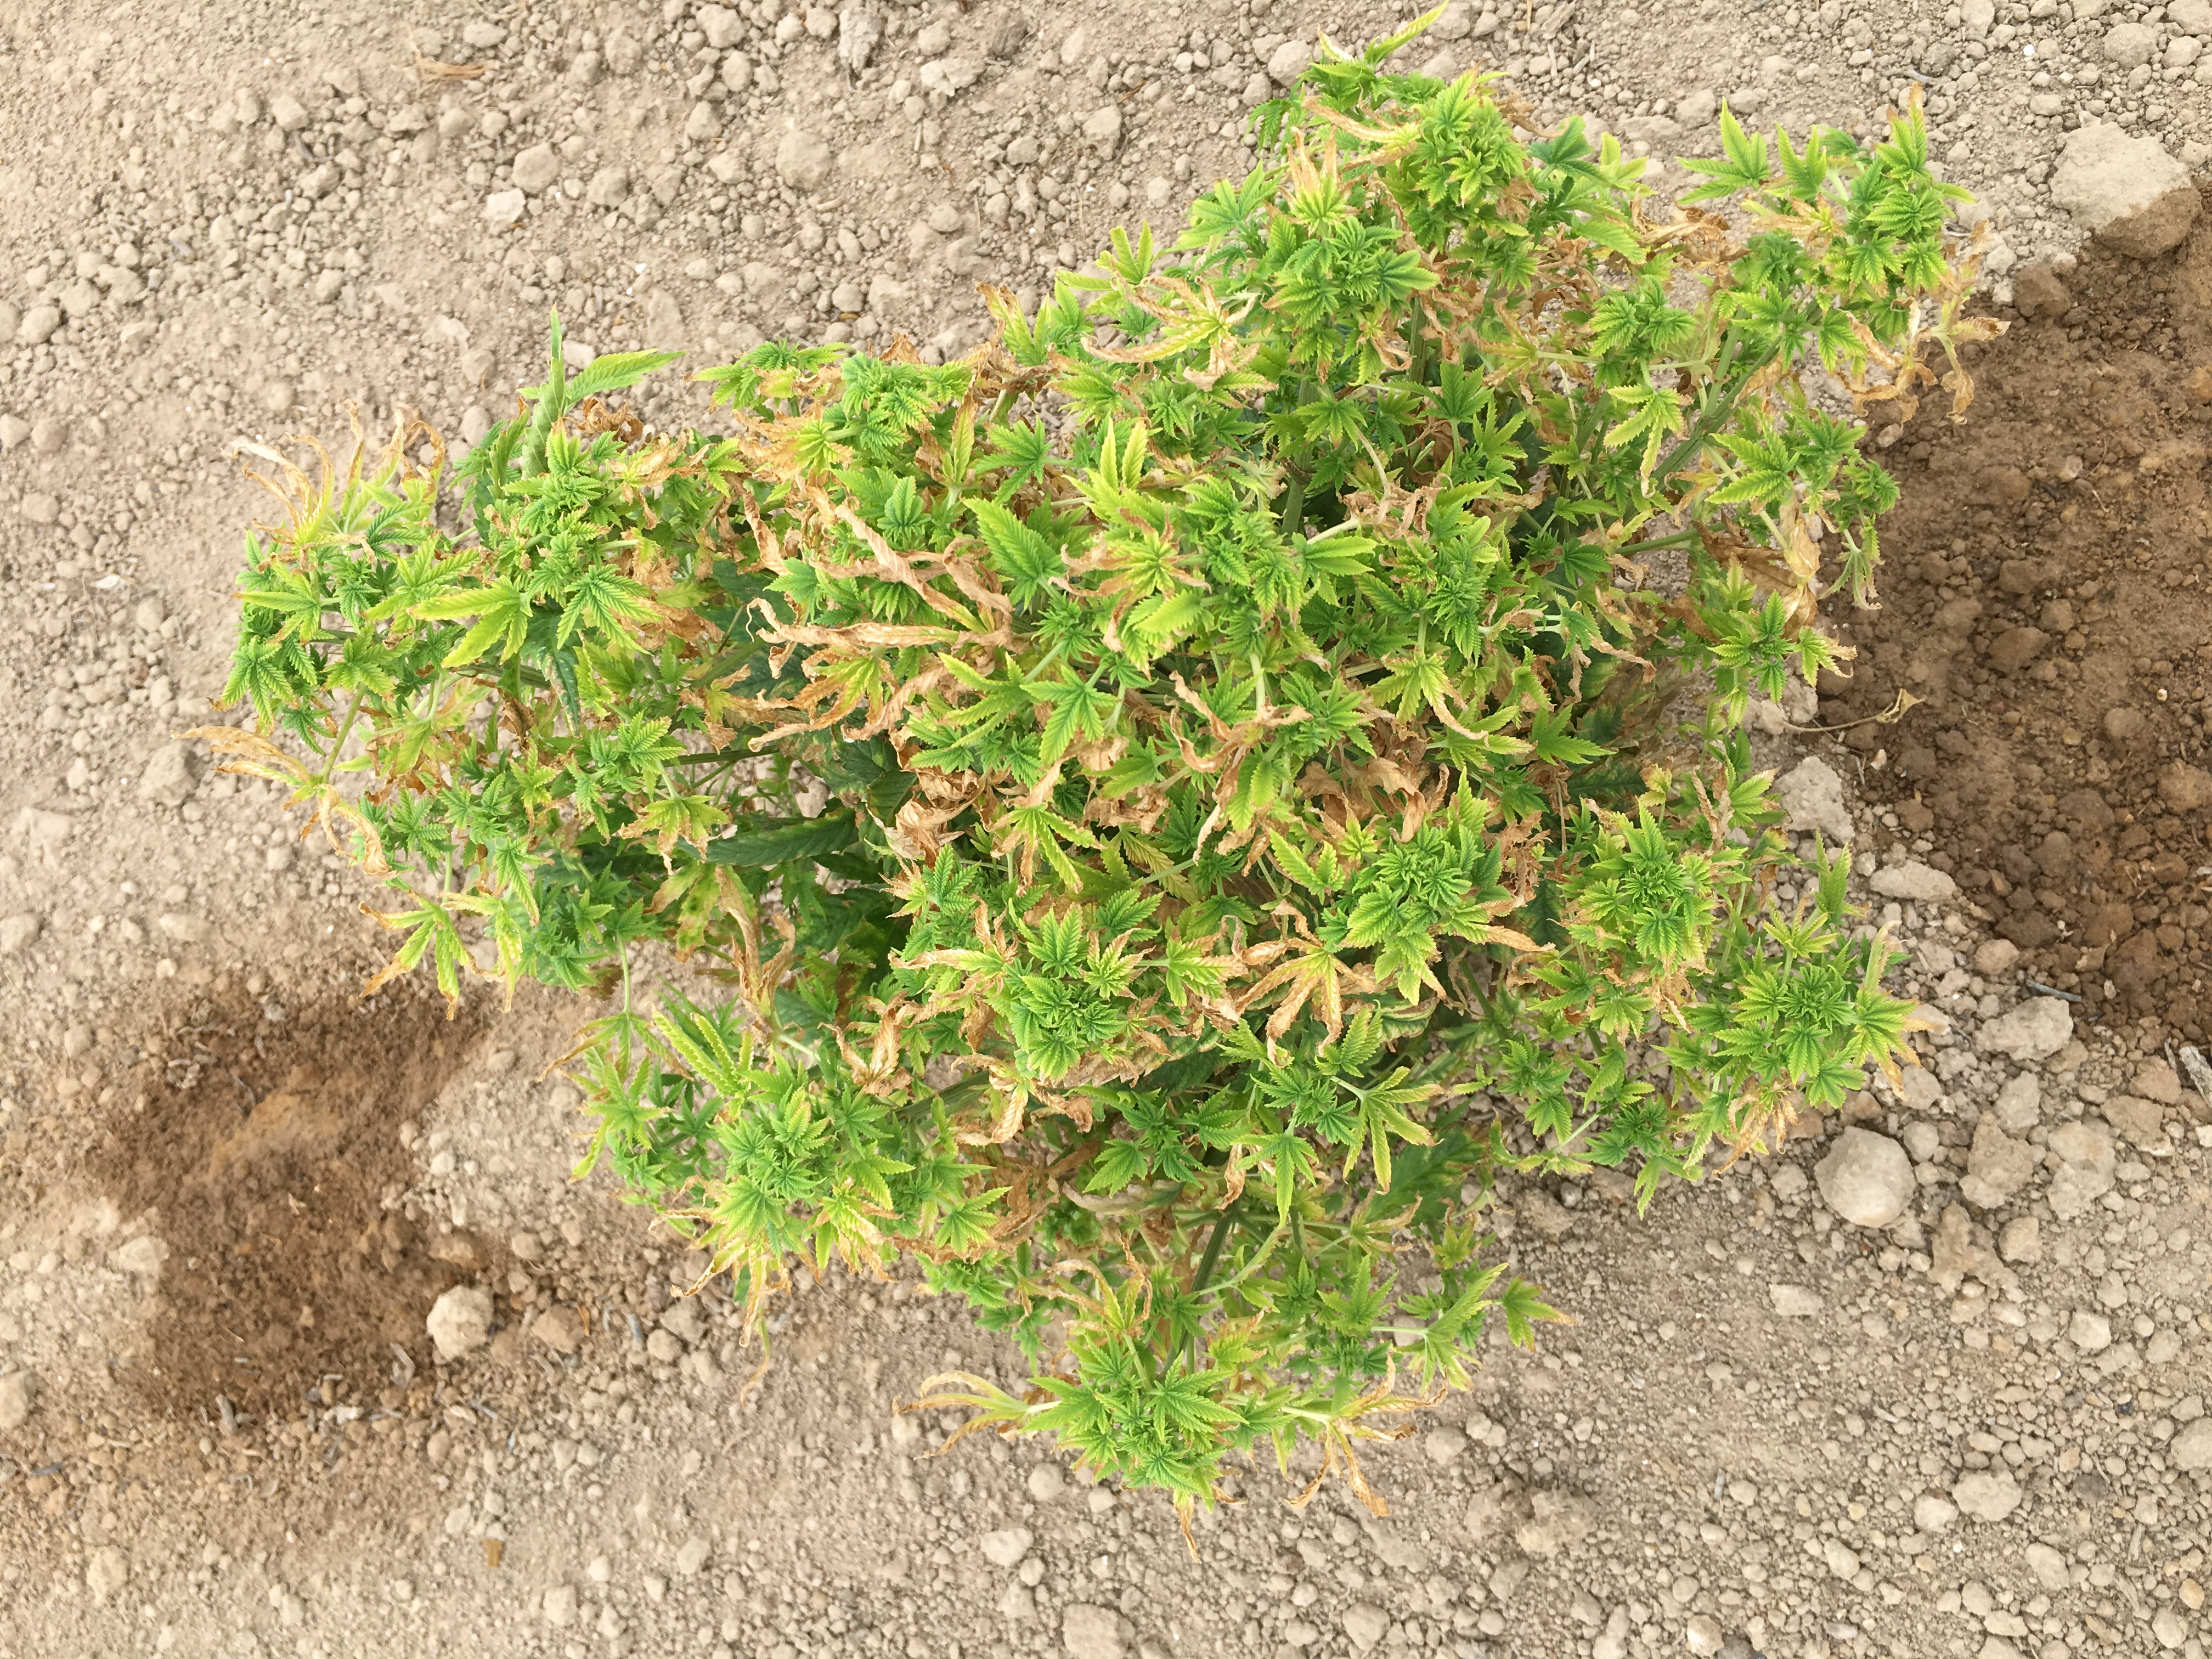 A diseased hemp plant that is much smaller than the healthy plant and has severe yellowing and clustered